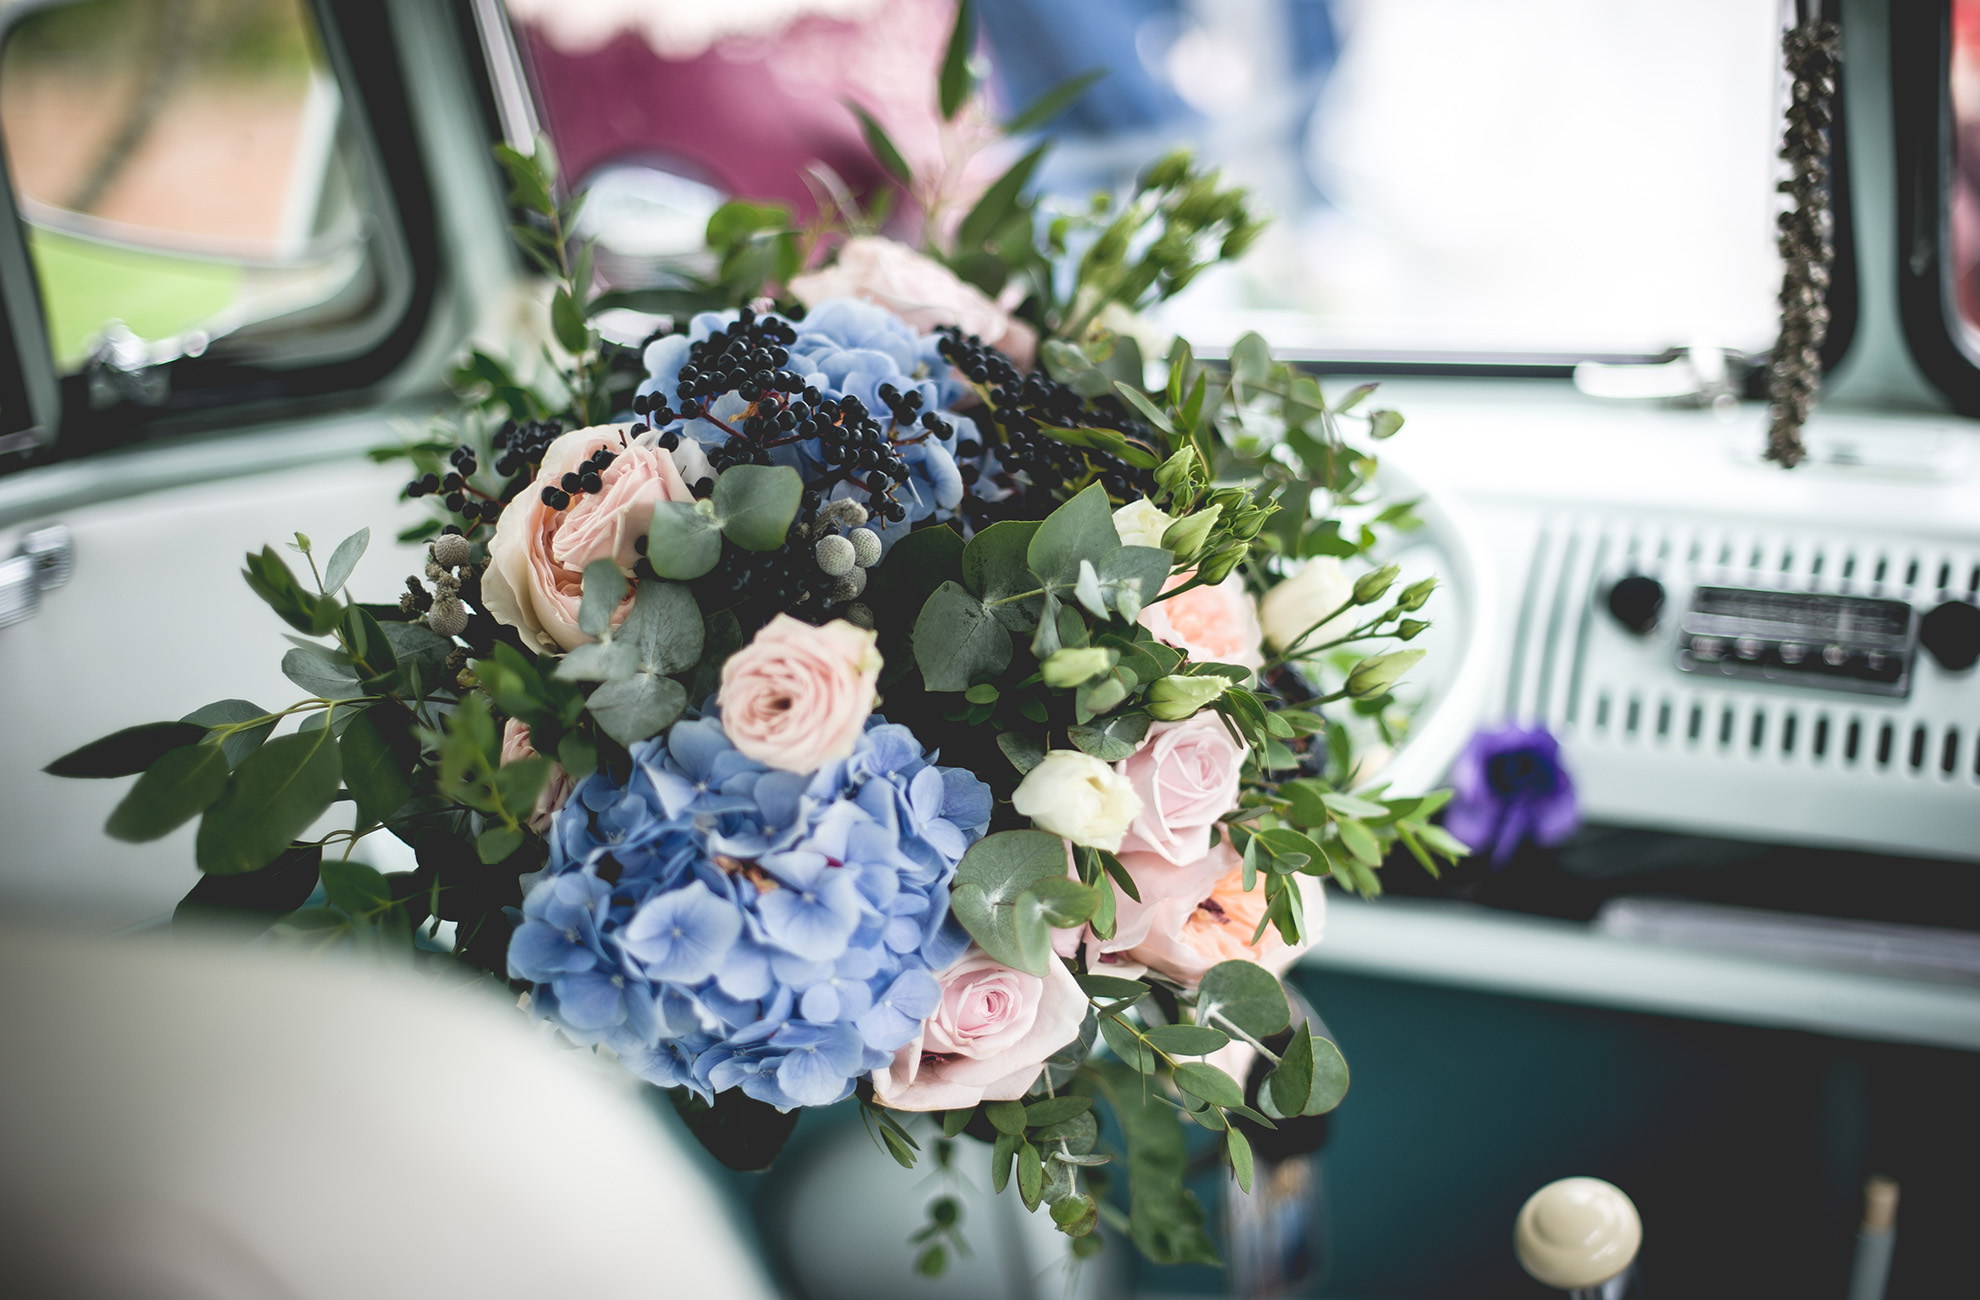 For a spring wedding bouquet at Combermere Abbey choose pastel shades – wedding ideas